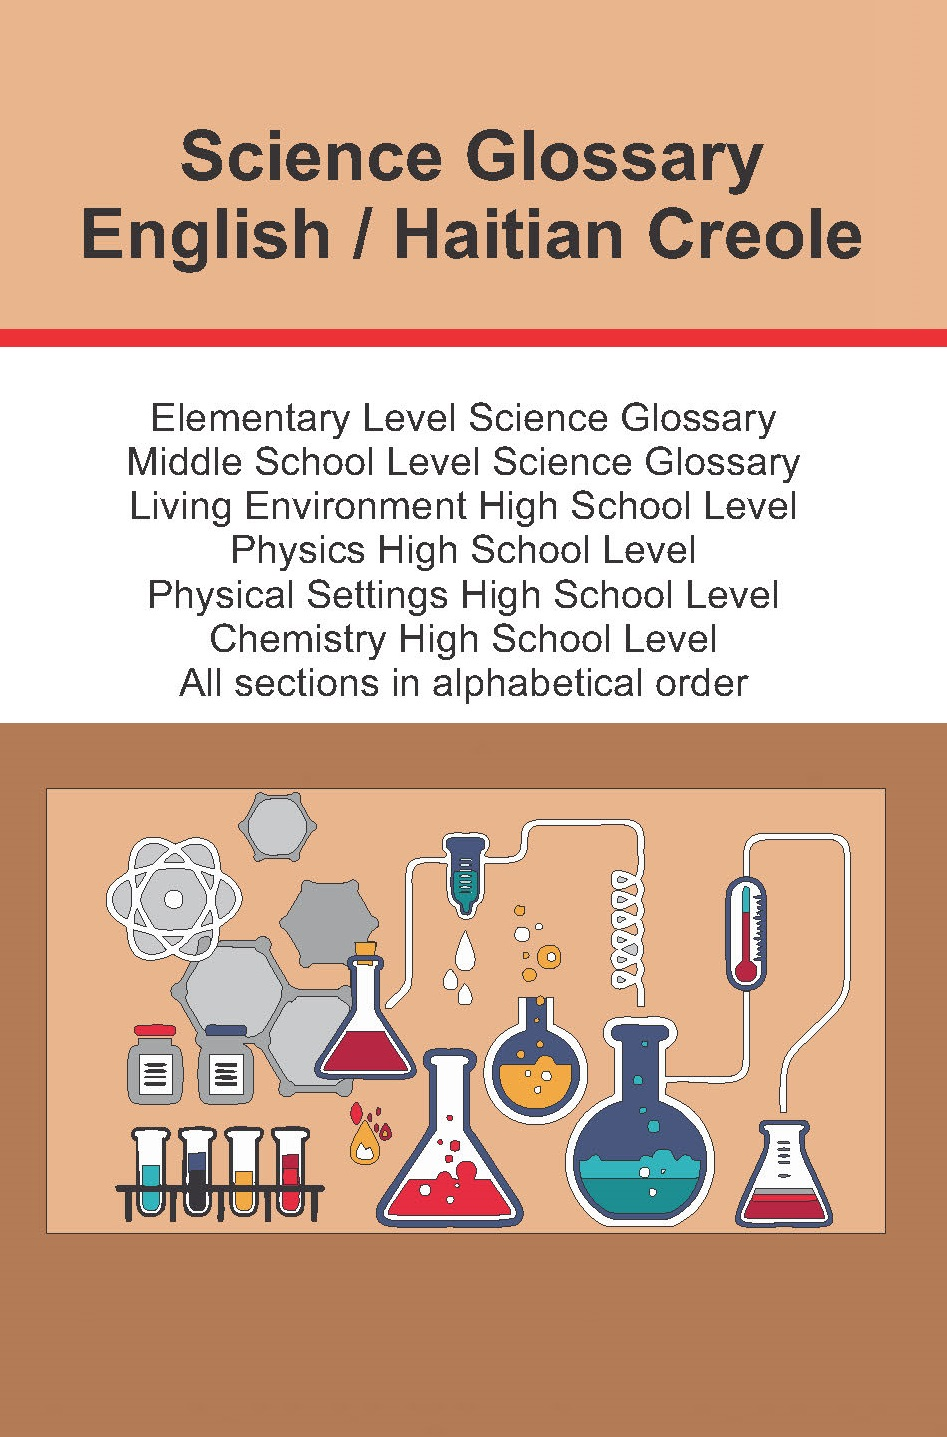 Science Glossary  English/Haitian Creole  Elementary, Middle School and High School Level